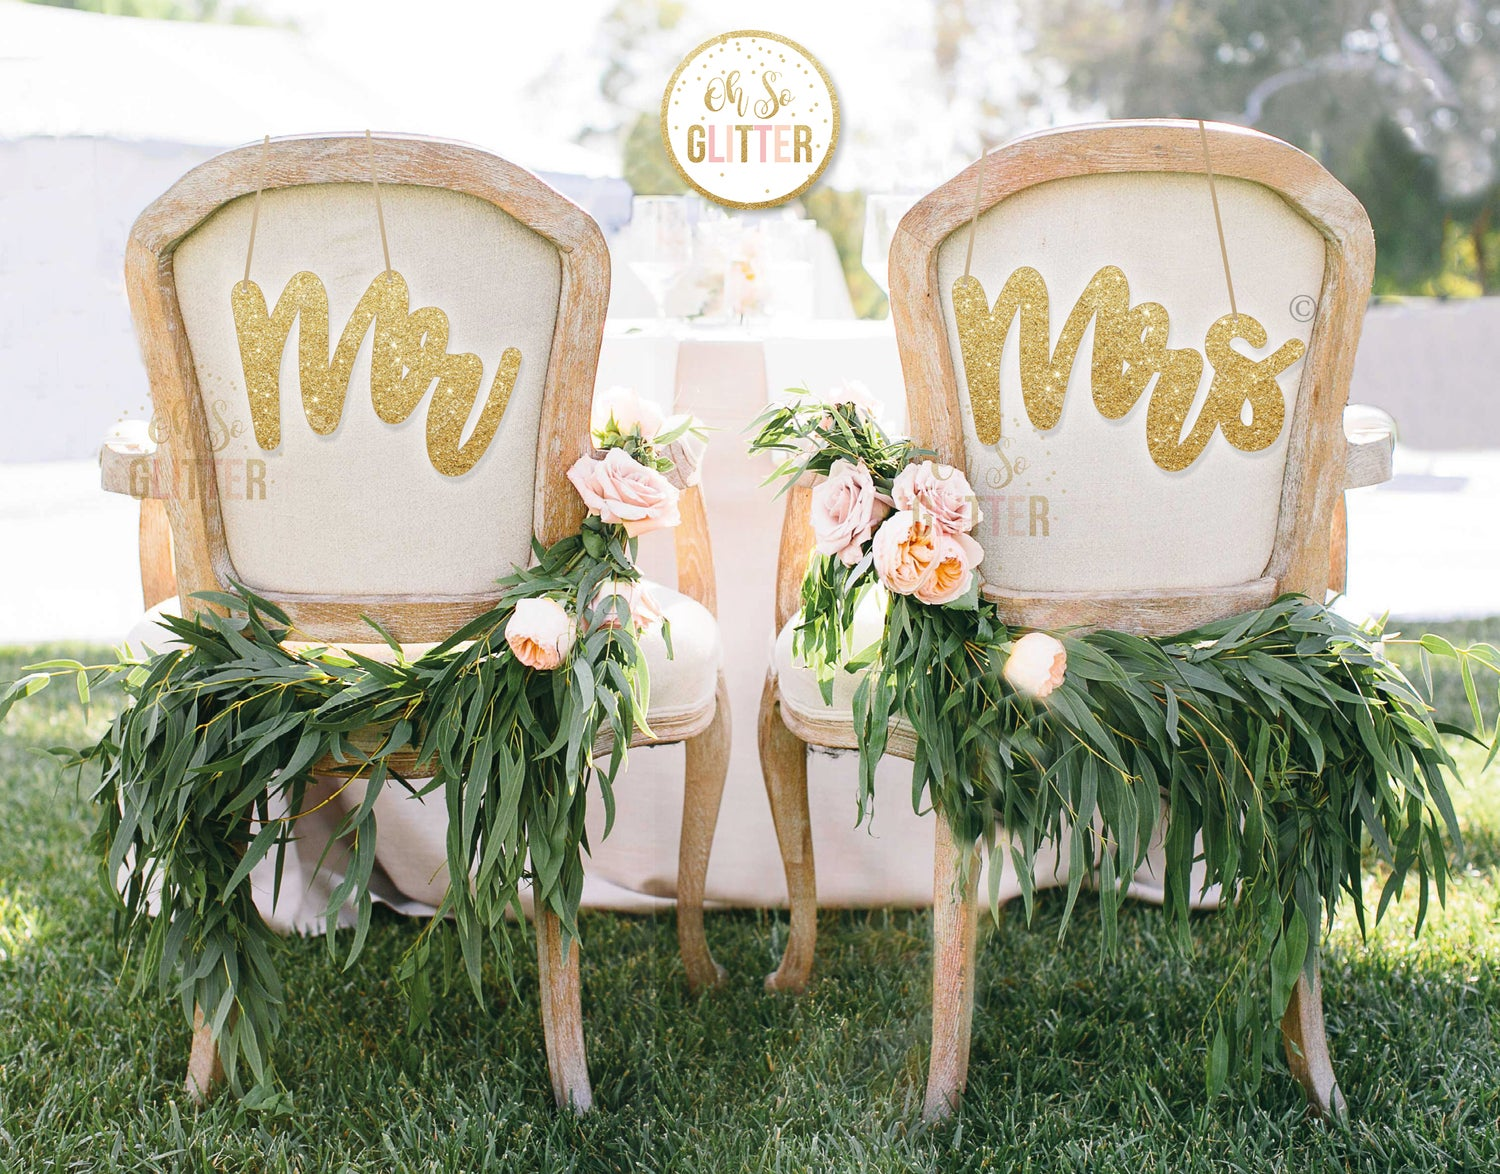 Image of Glitter Chair signs